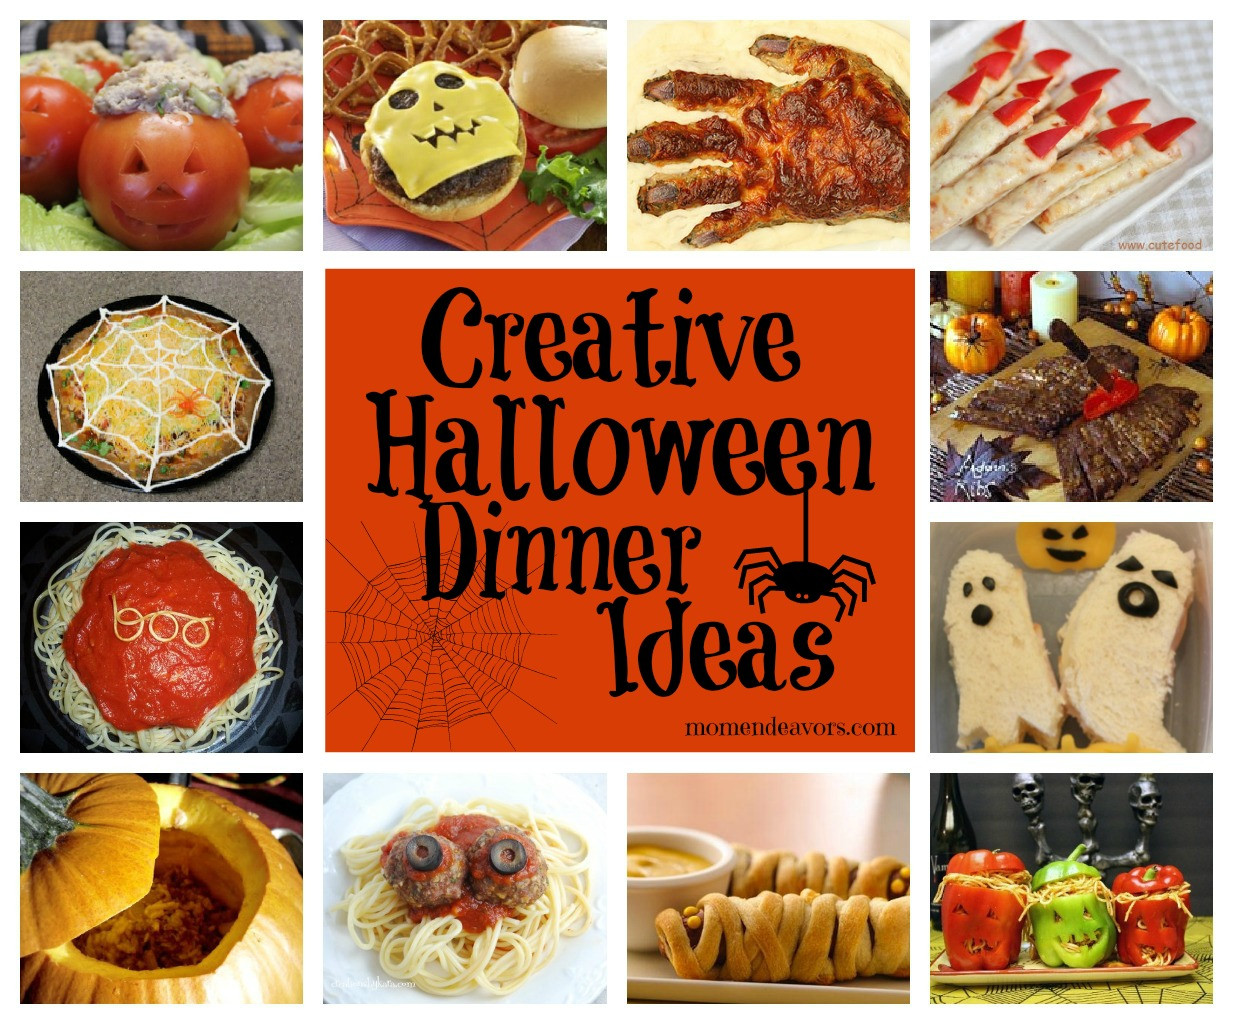 Fun Halloween Dinners Ideas  15 Creative Halloween Dinner Ideas